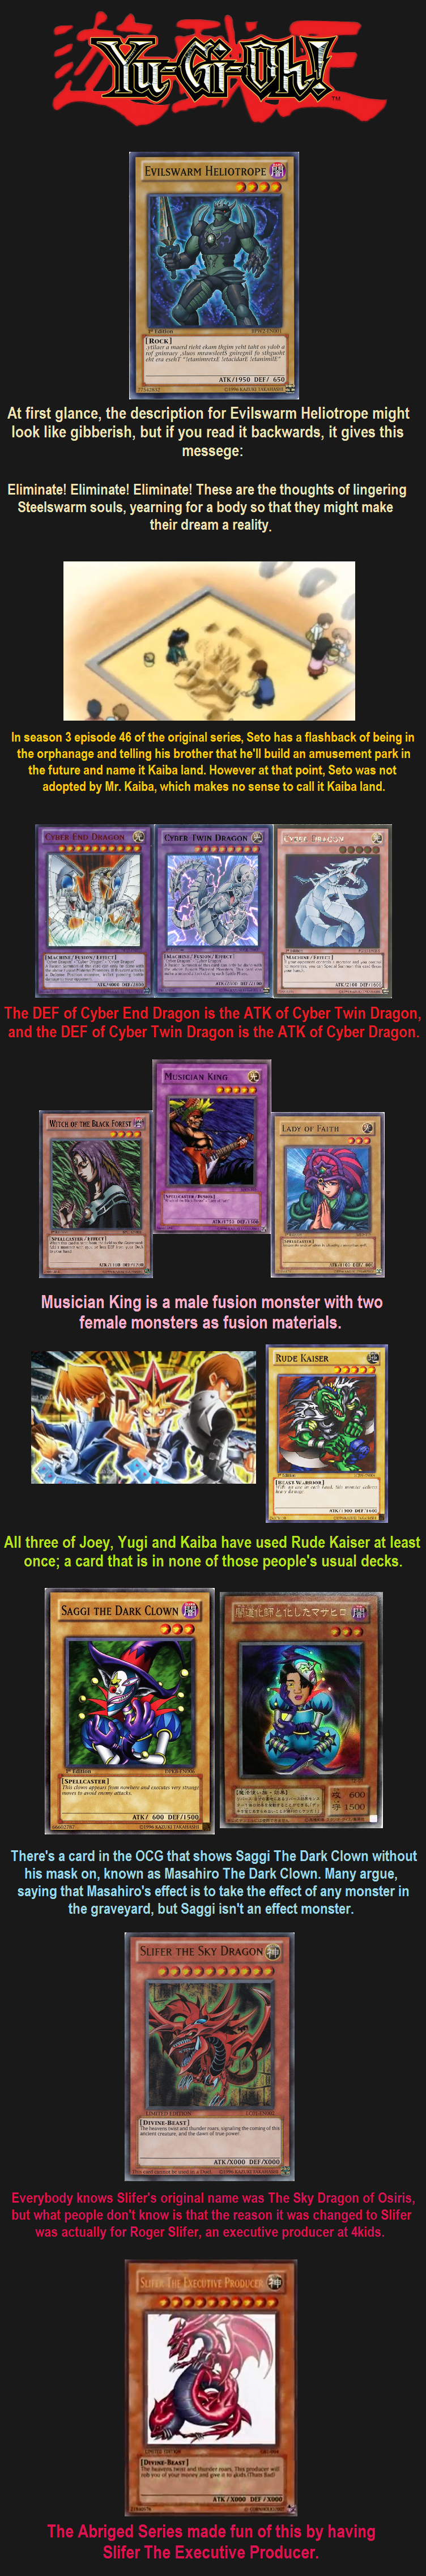 Yugioh Facts 6 9365d2 Png 752 4 547 Pixels Yugioh Yugioh Cards Funny Pokemon Pictures